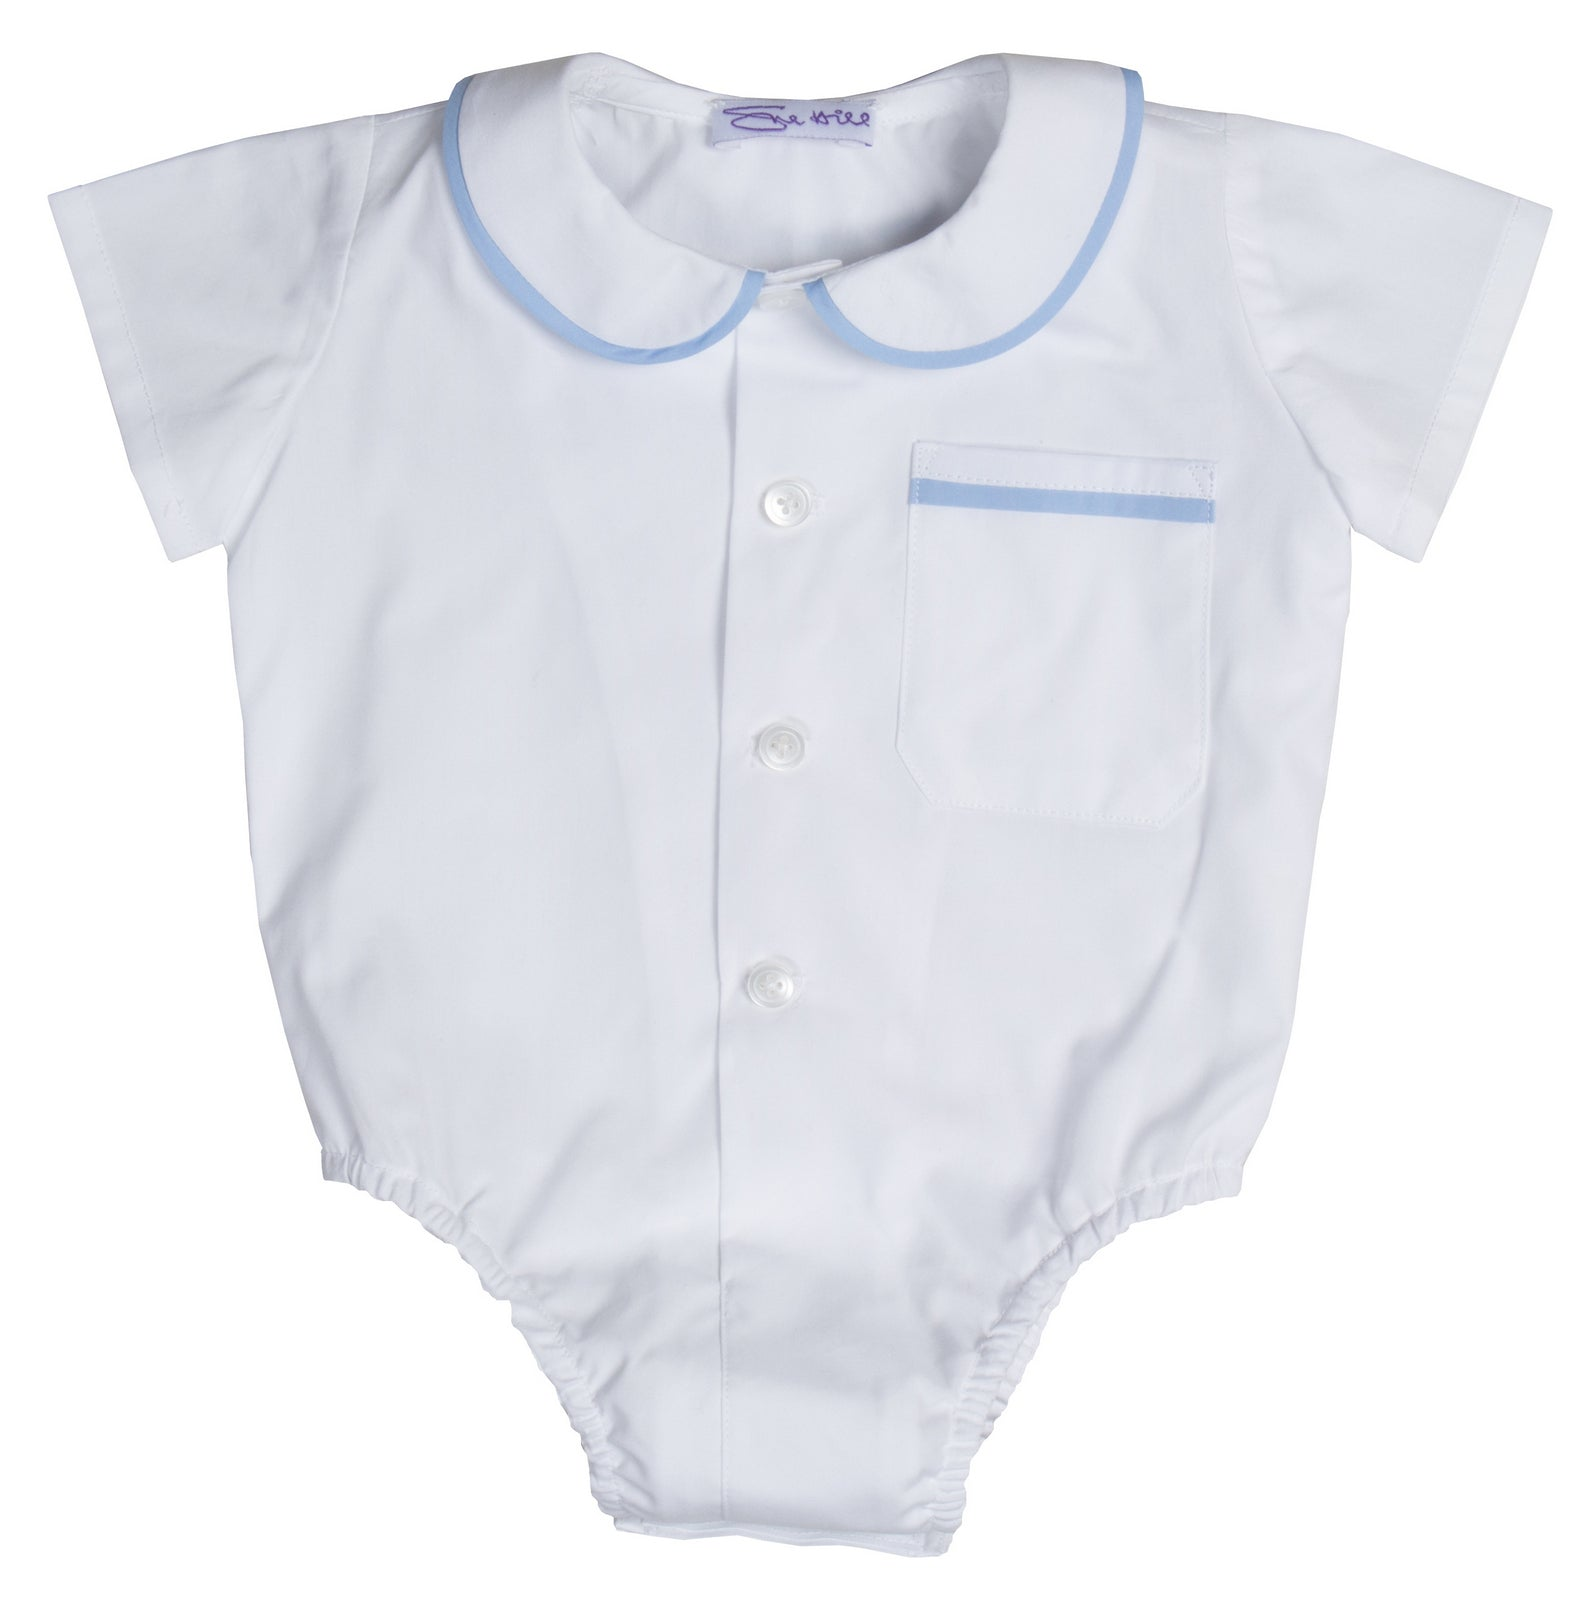 James Shirt & Romper Shorts White/Pale Blue Cotton